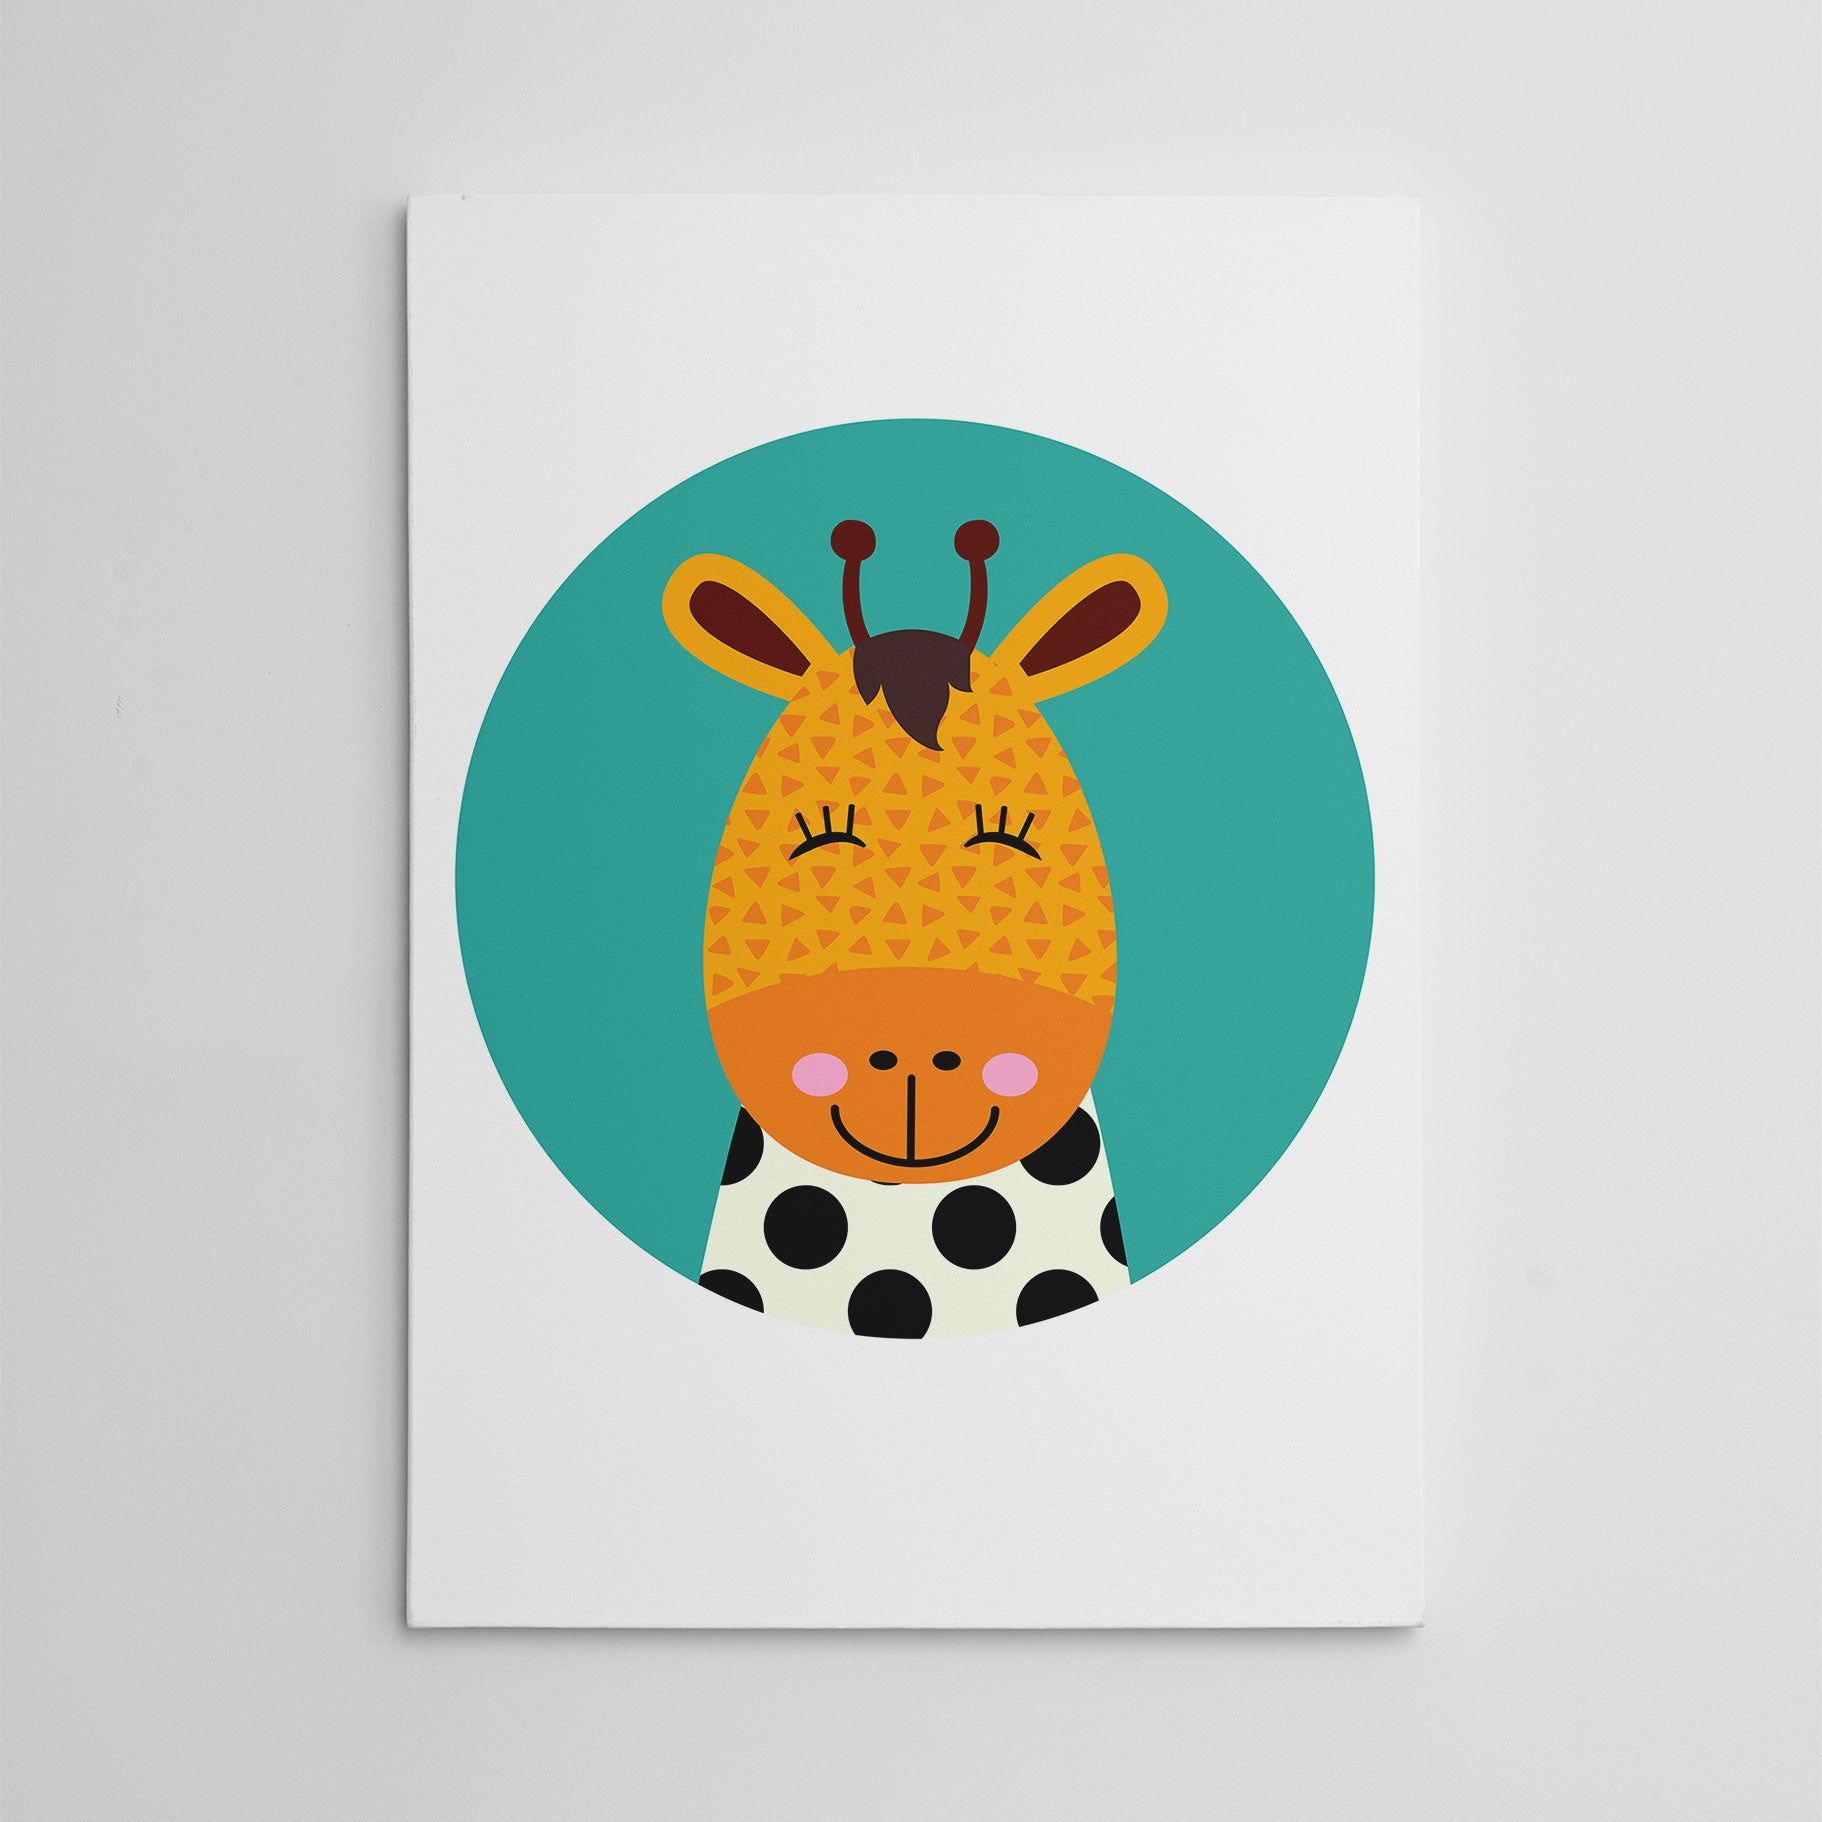 Nursery canvas print with a smiley giraffe in a blue circle.